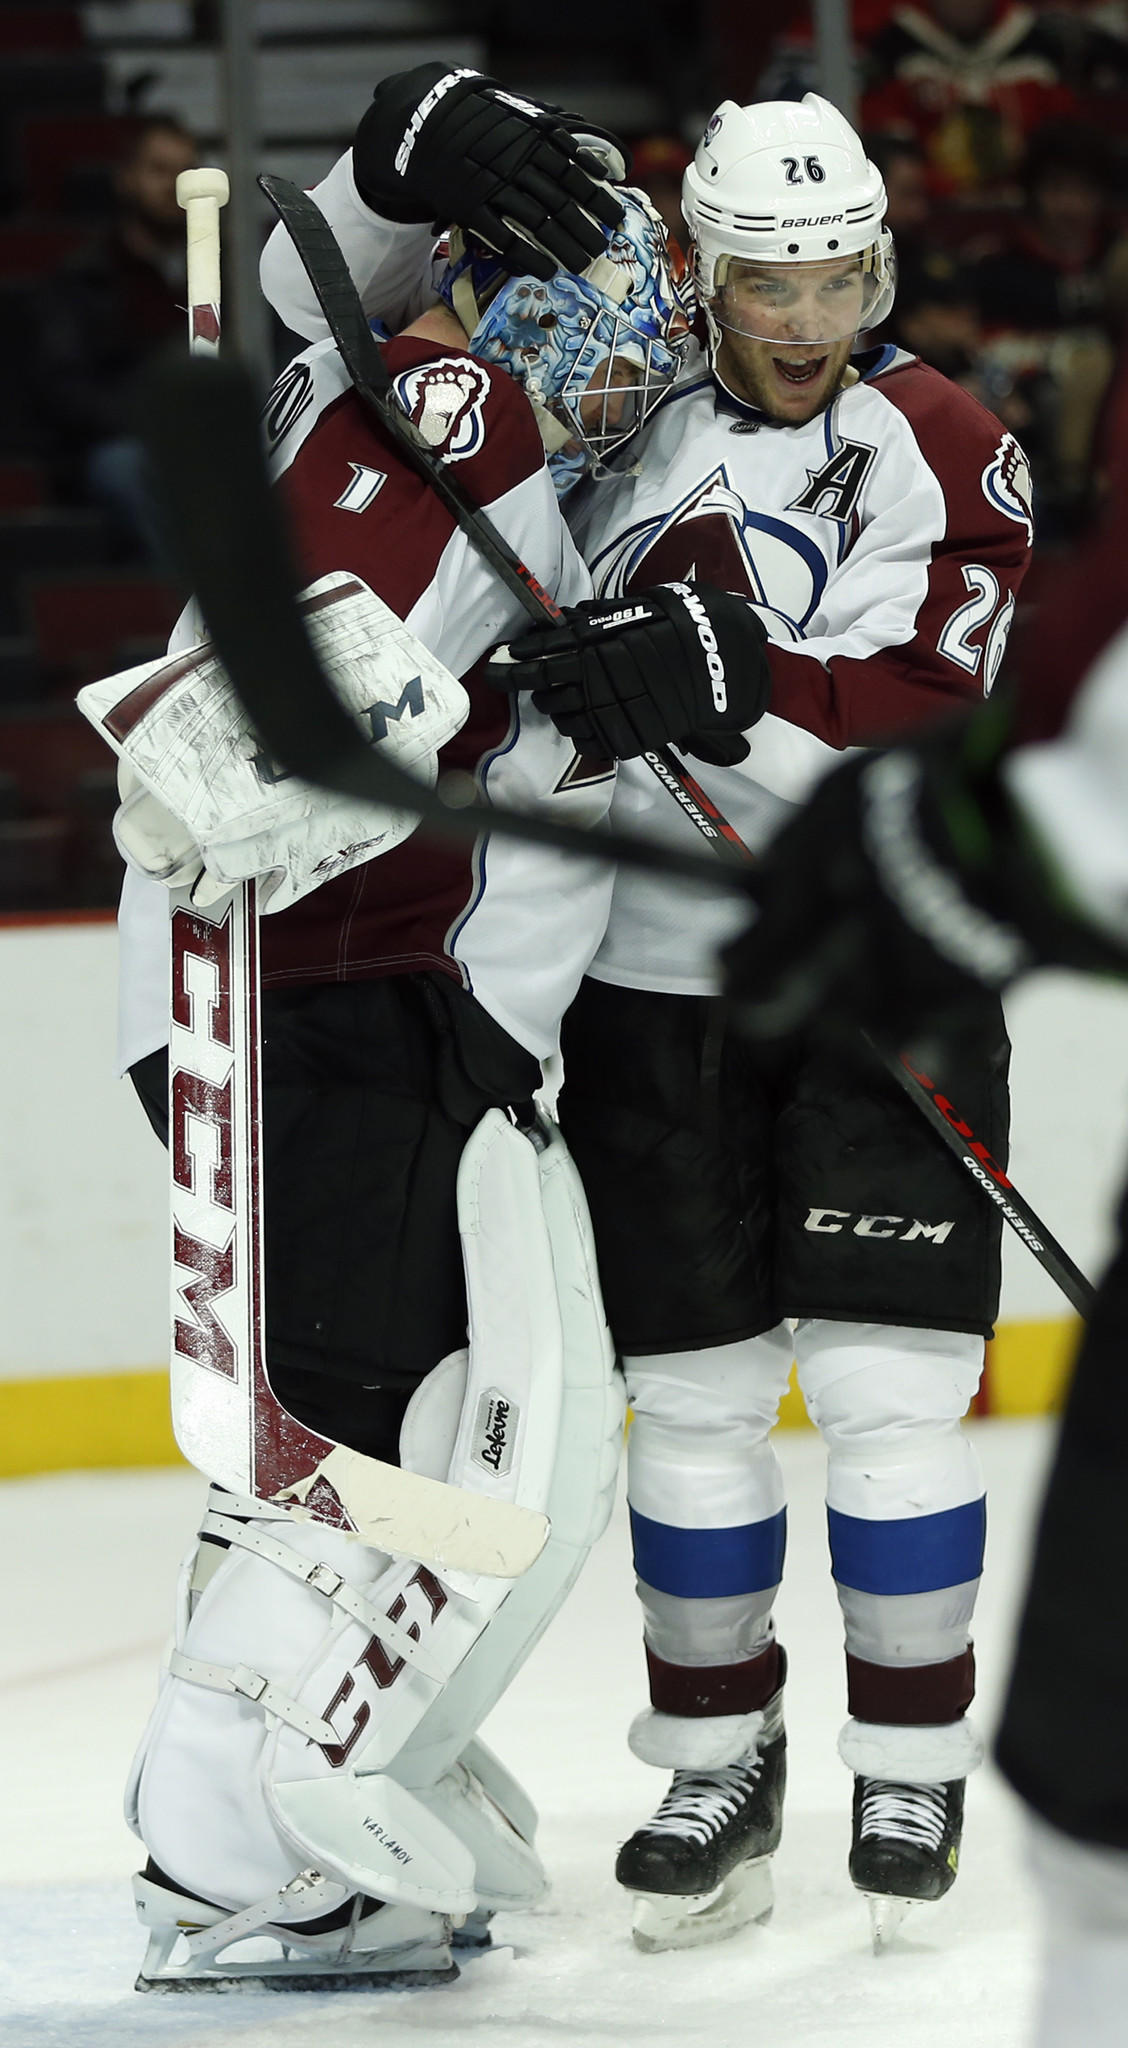 The Avalanche's Paul Stastny (right) and goalie Semyon Varlamov celebrate a 4-2 win over the Blackhawks.